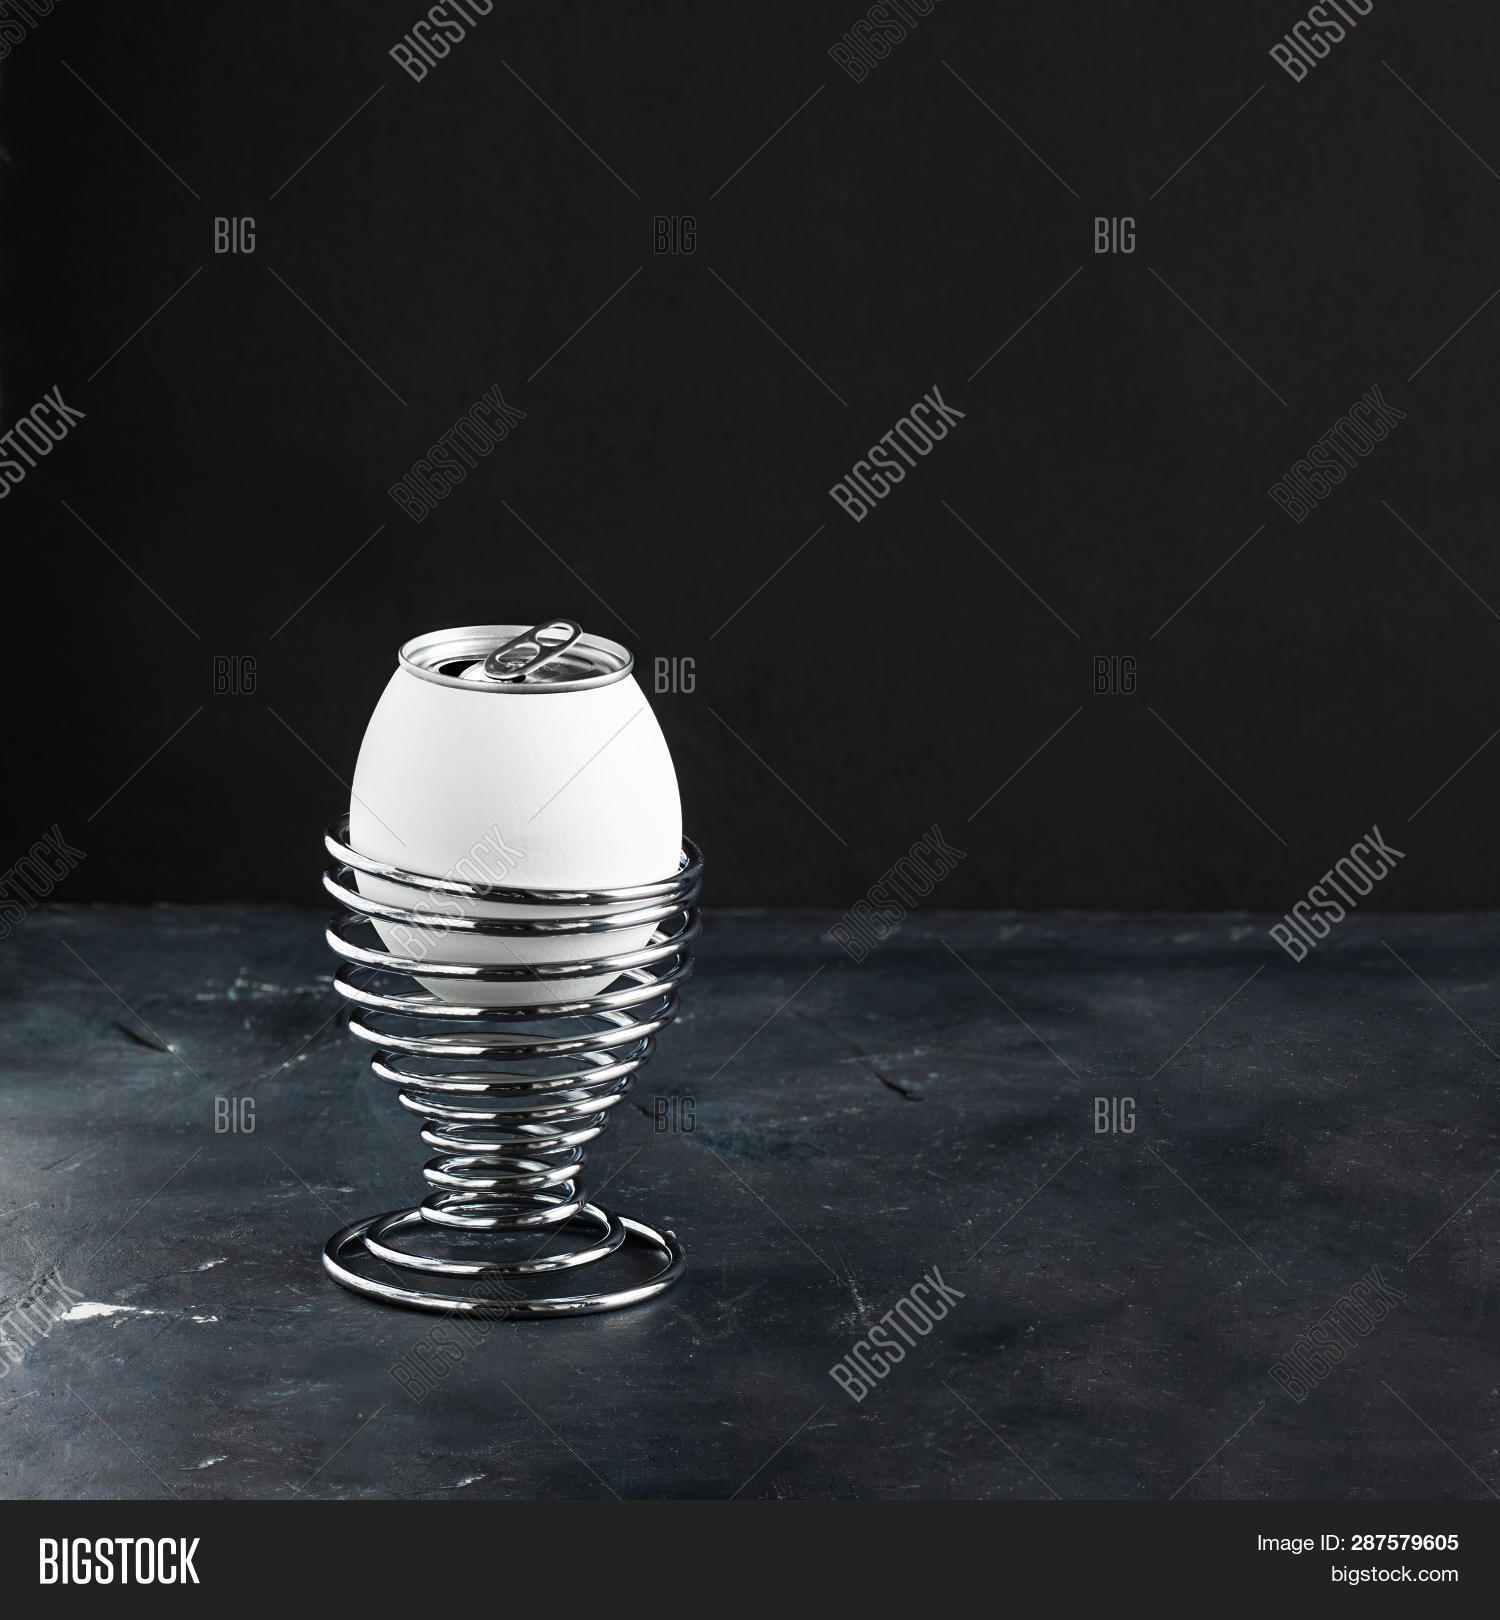 White Egg In Metal Helix Egg Cup, Opened Lemonade Alluminium Can As Top Of Egg On Black Chalkboard B